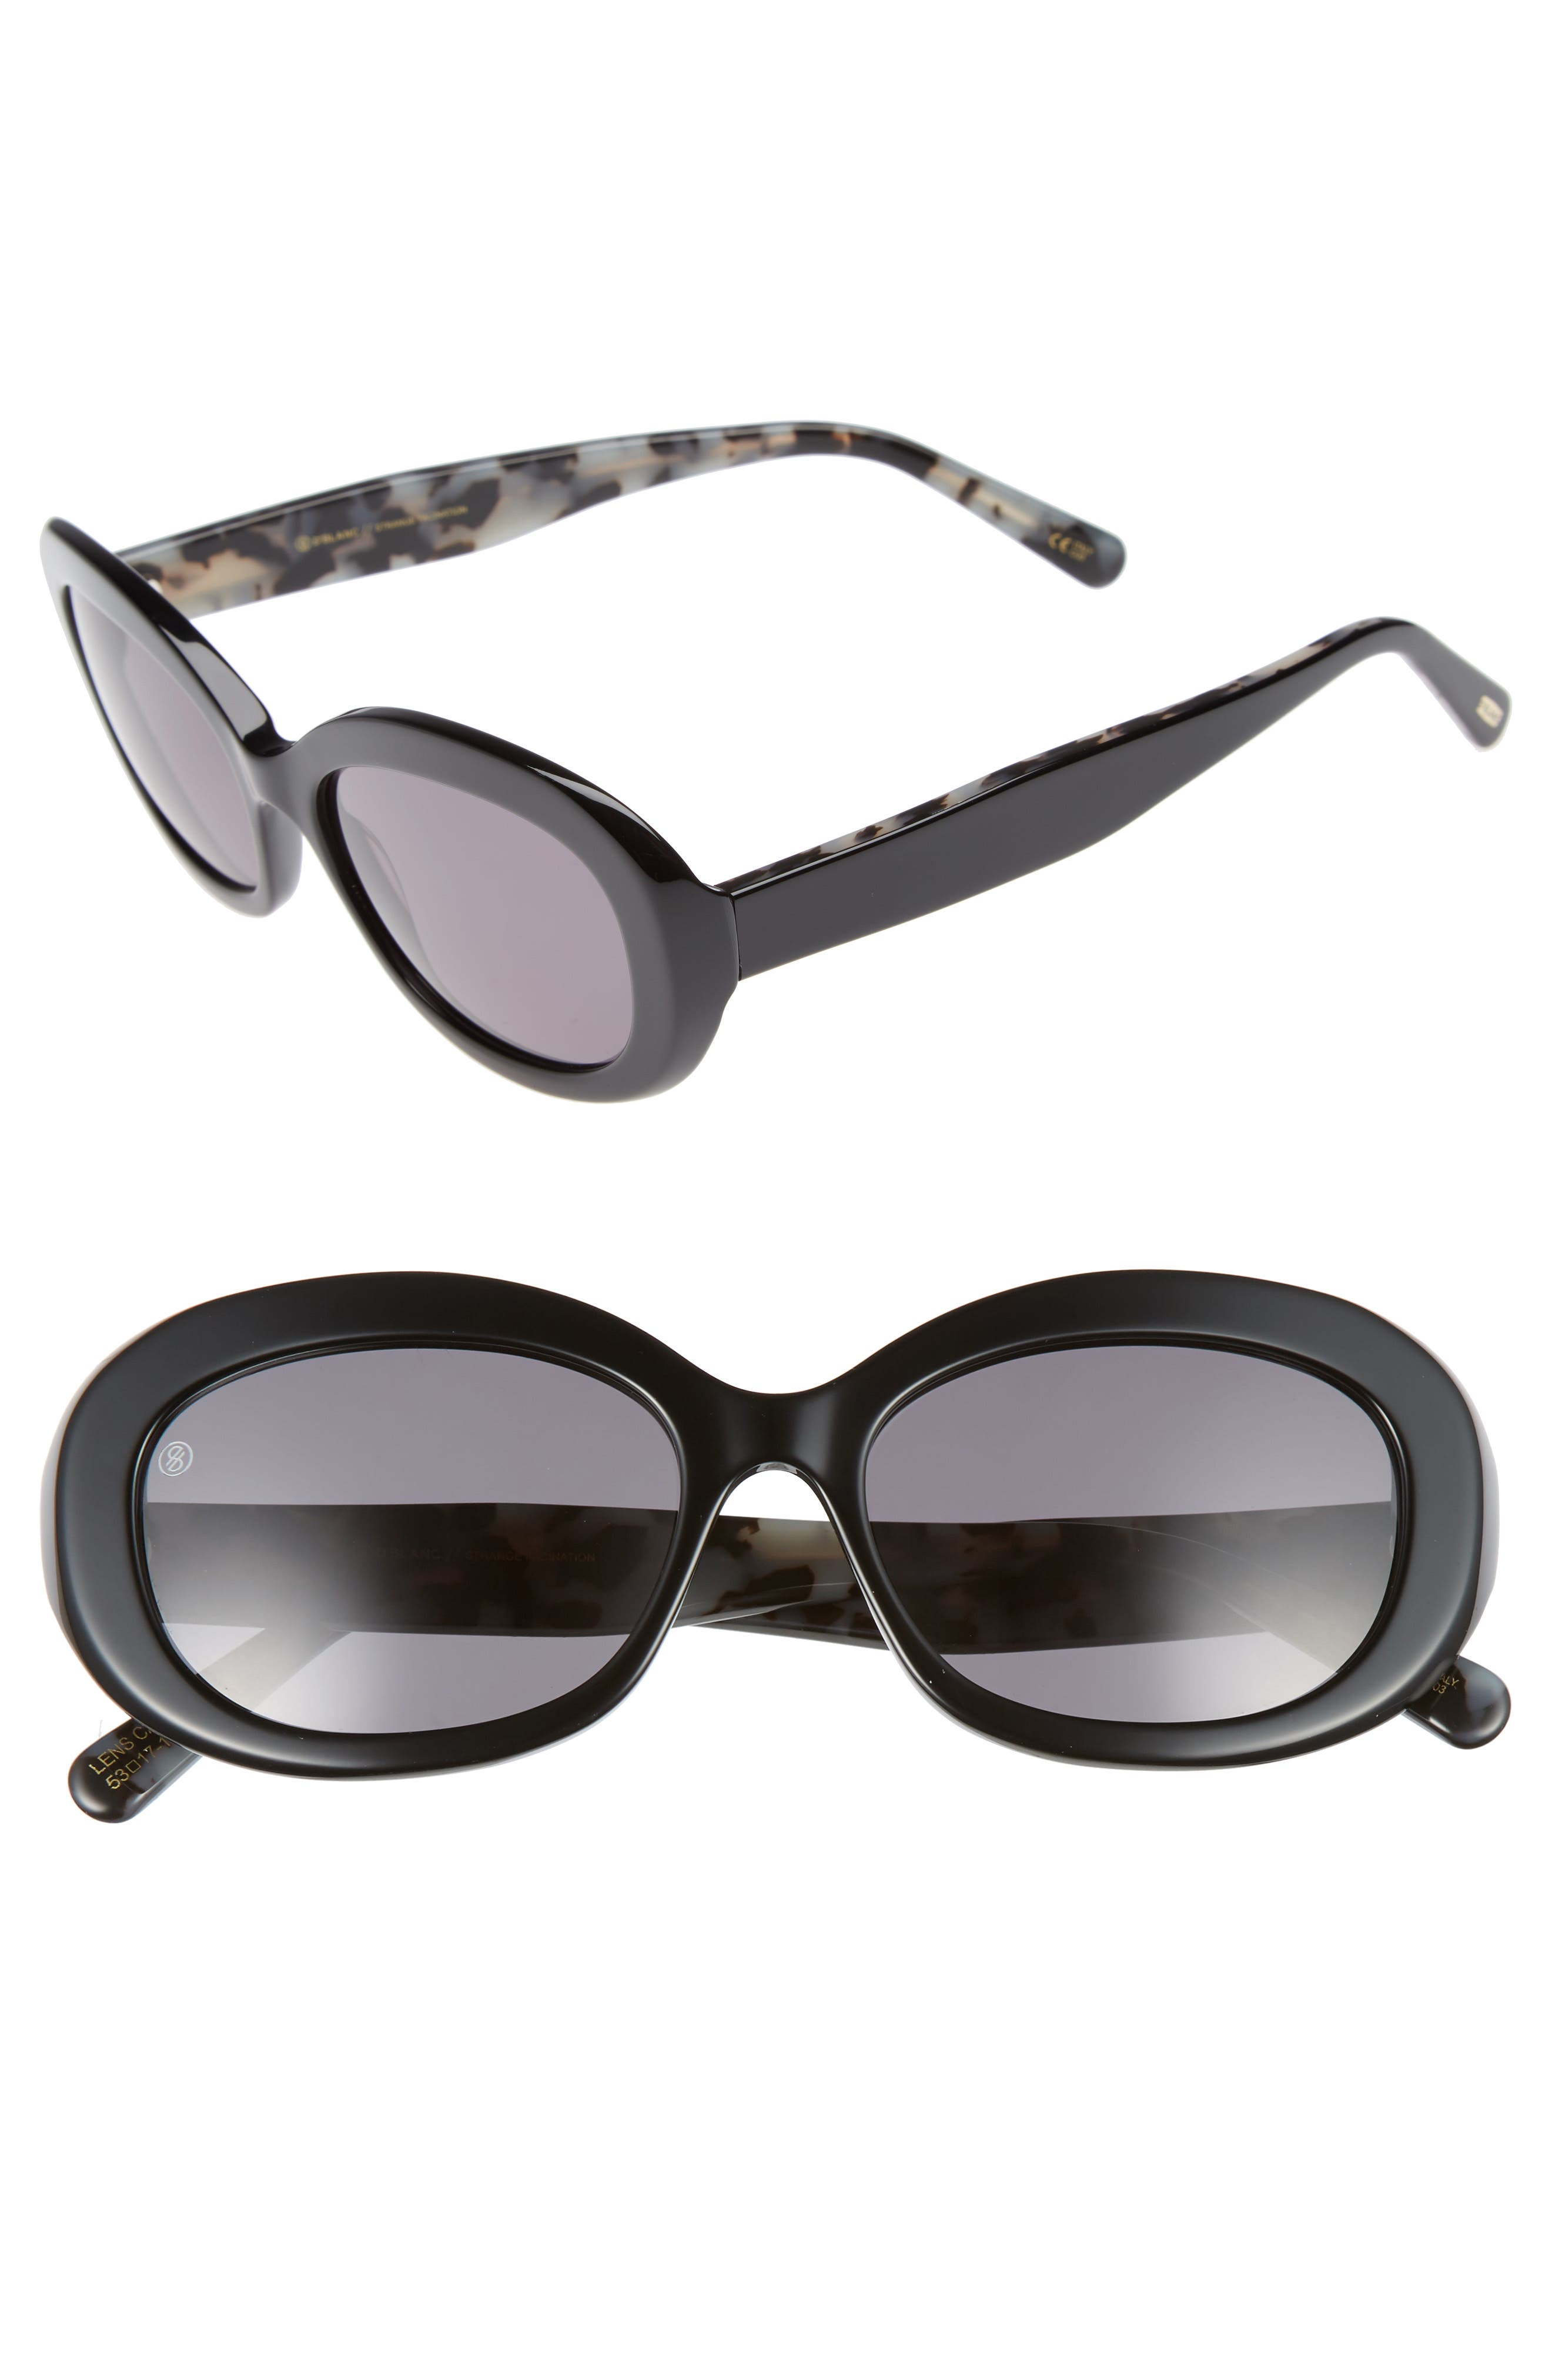 DBLANC D'BLANC Strange Fascination 53mm Oval Sunglasses, Main, color, 001